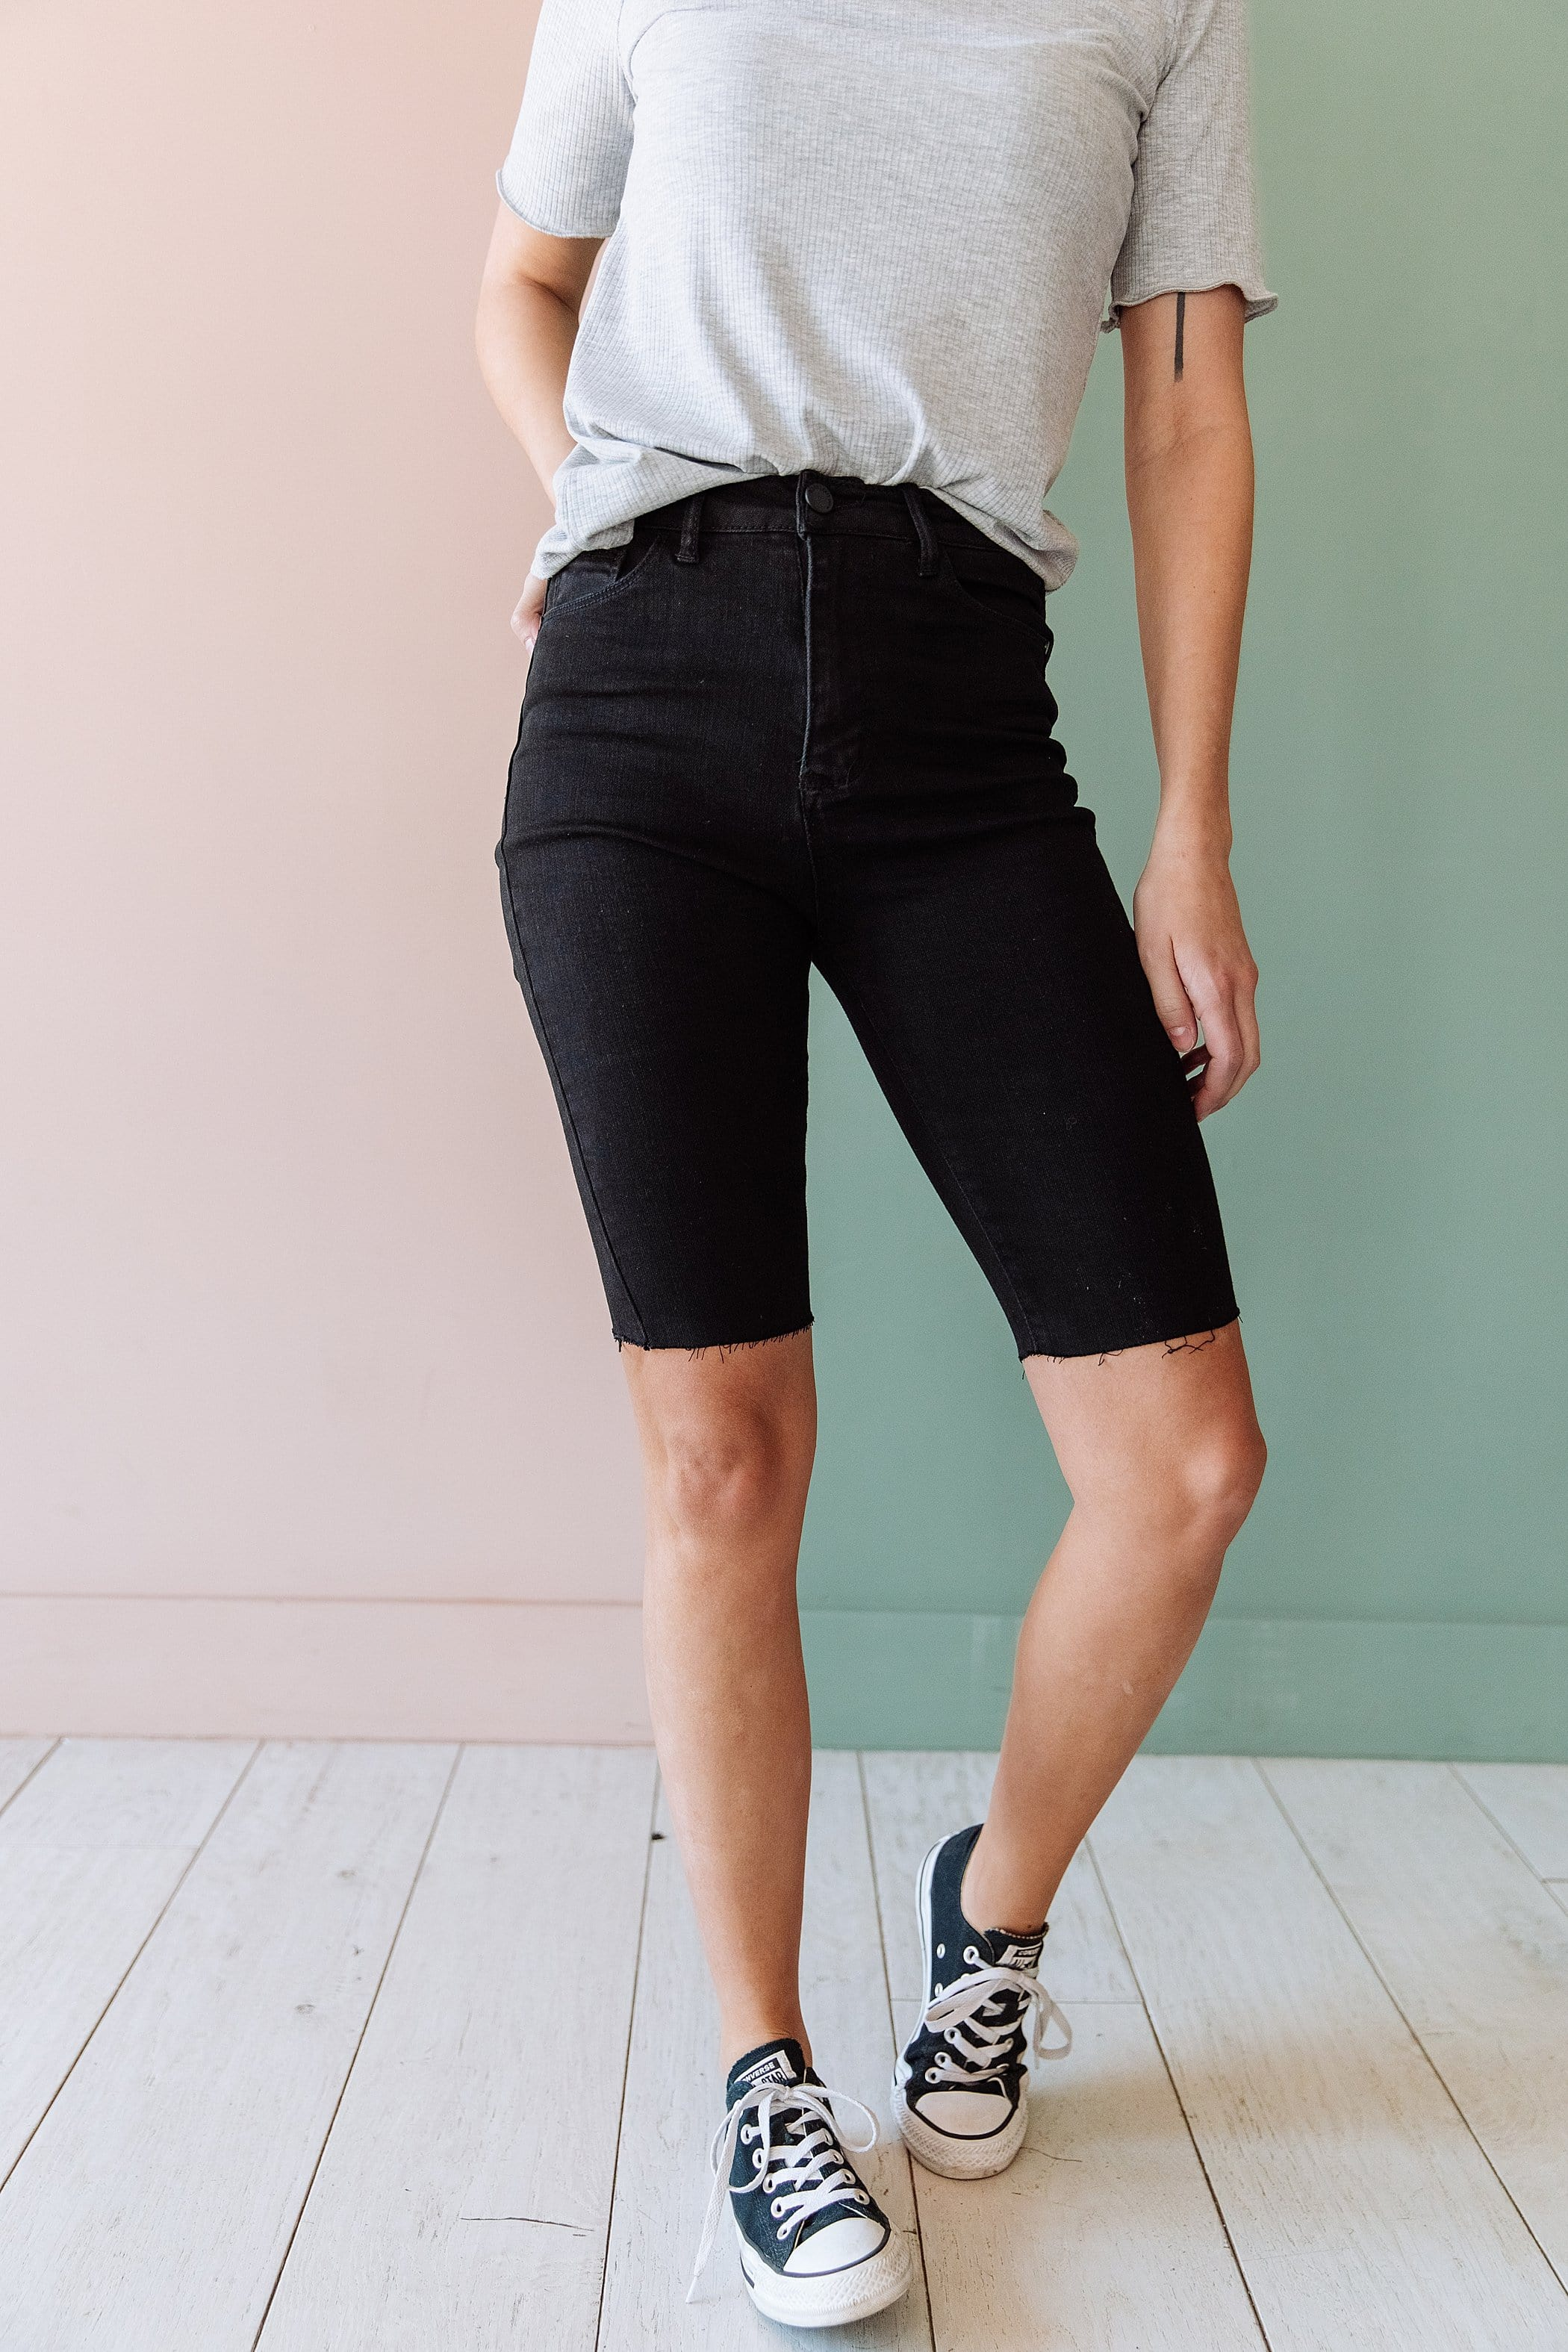 The Indy Bermuda Shorts in Black, Denim, and White